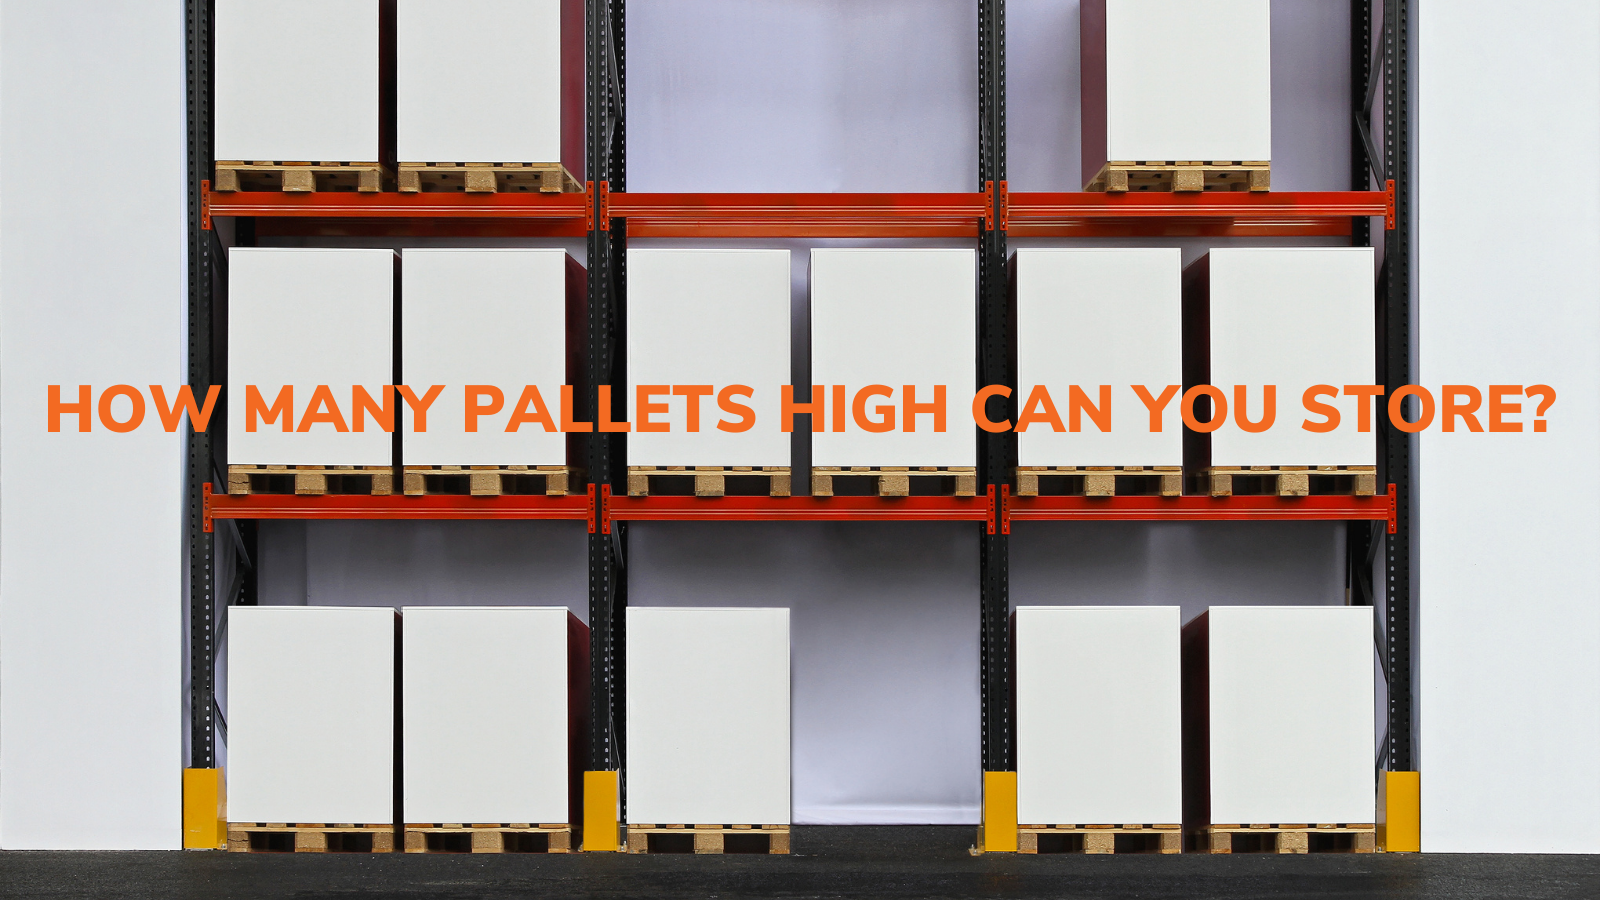 How many pallets high can you store in your warehouse